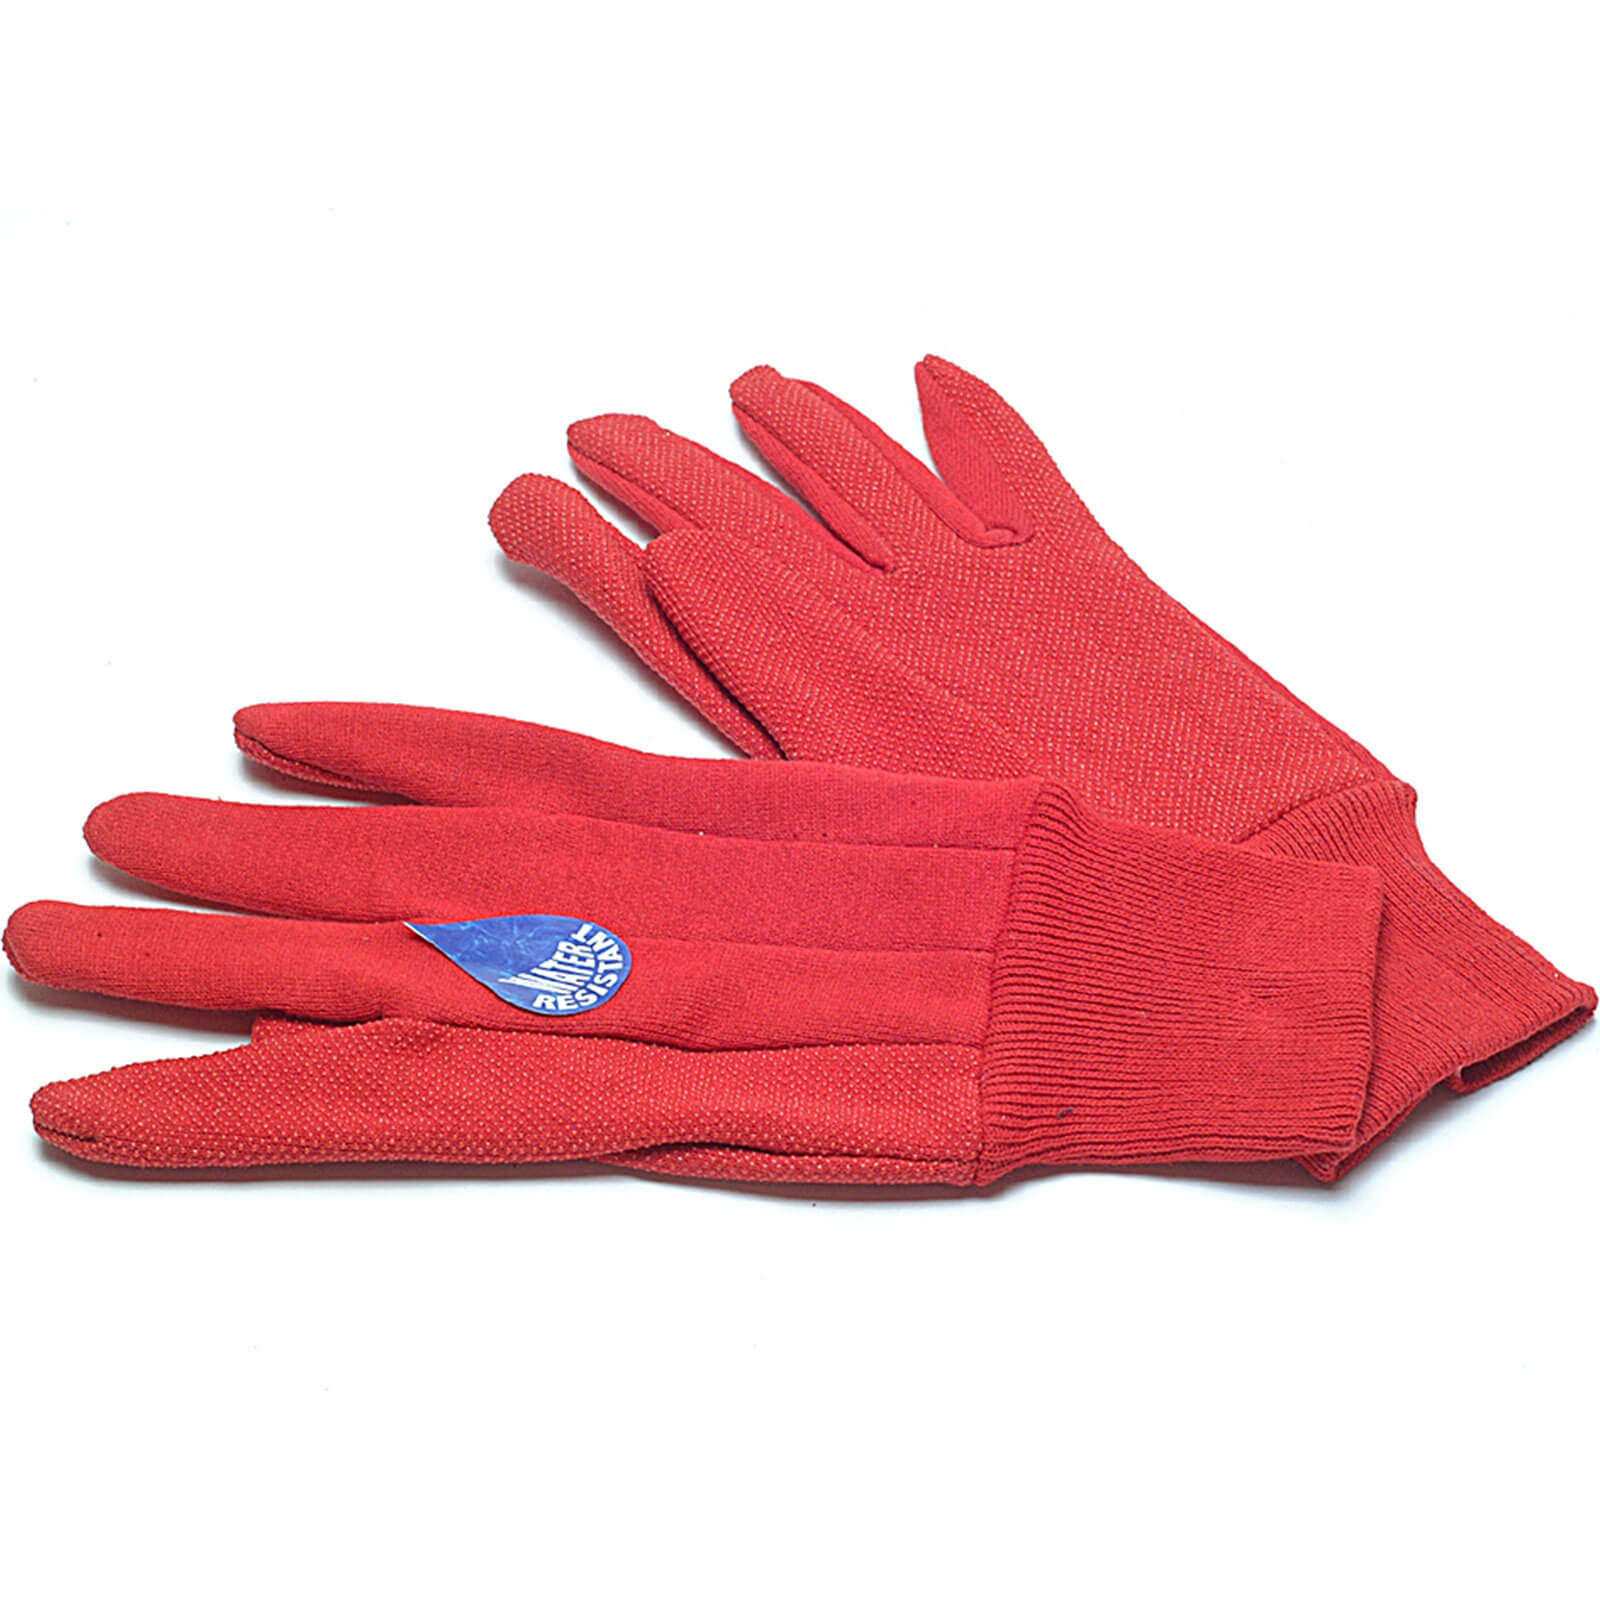 Town & Country Jersey Extra Grip Gloves One Size